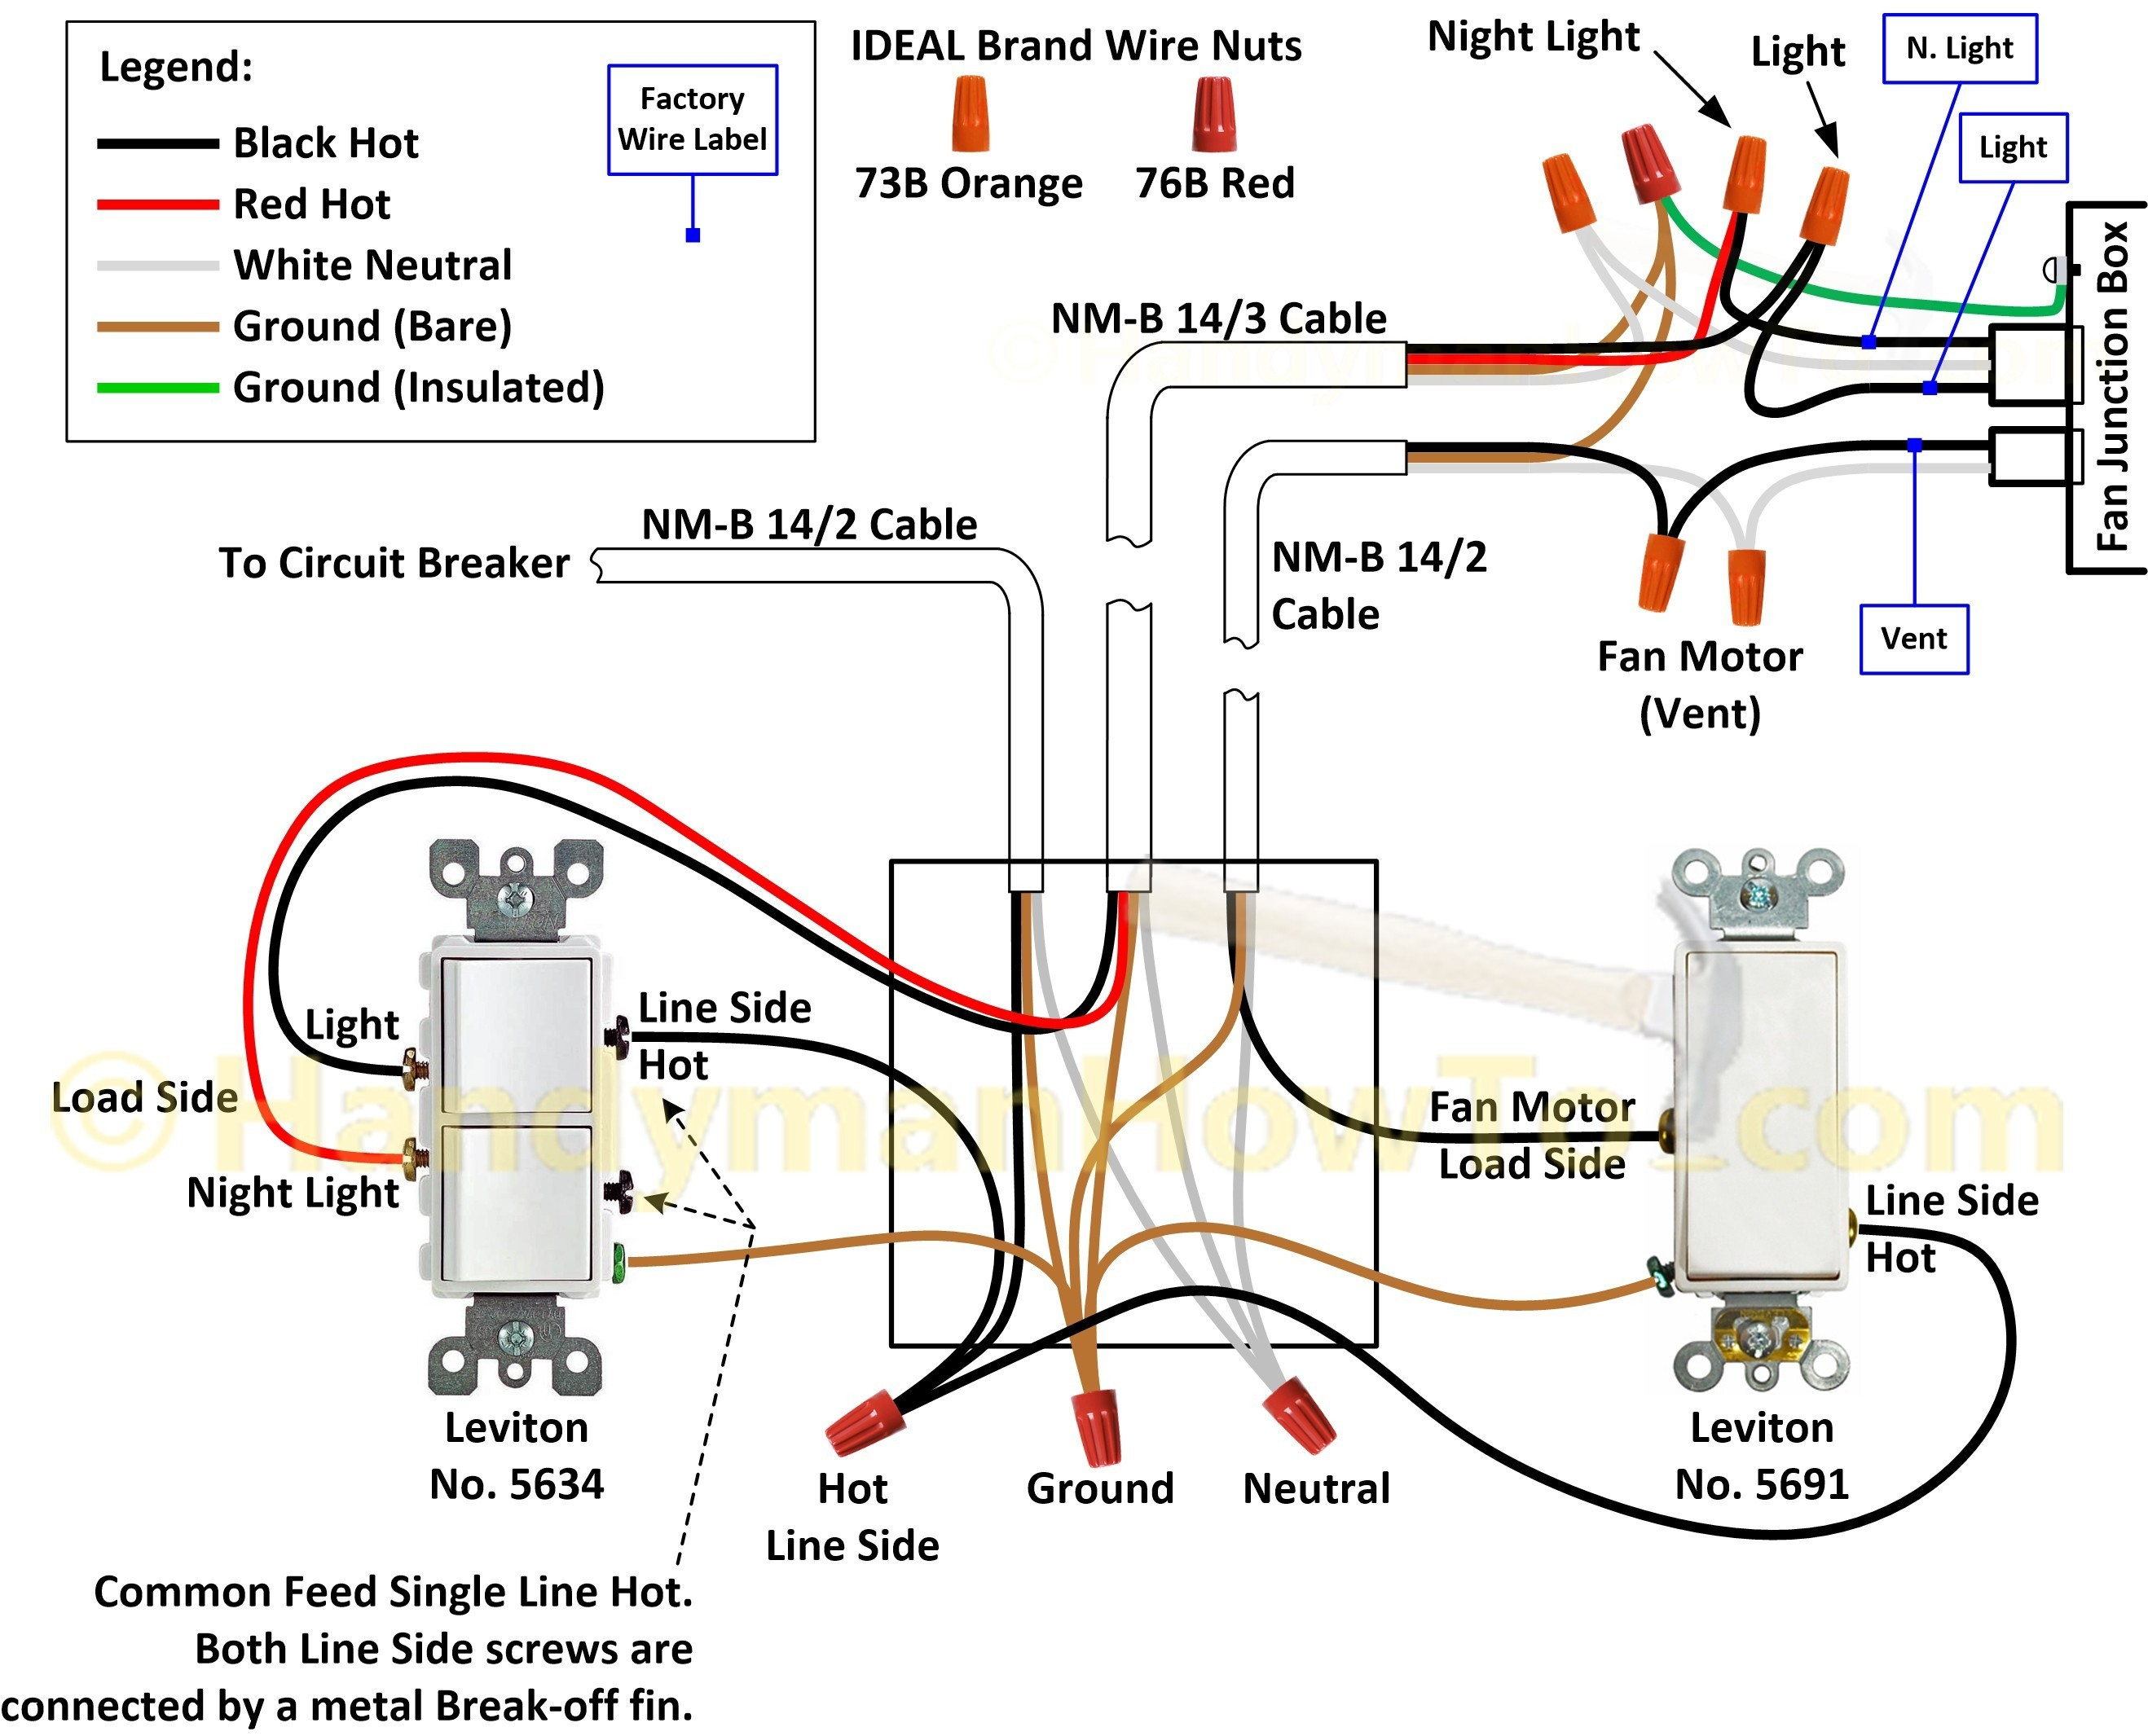 Wiring Diagram for 3 Way Switches Multiple Lights Fresh 4 Way Switch Wiring Diagrams Inspirational How